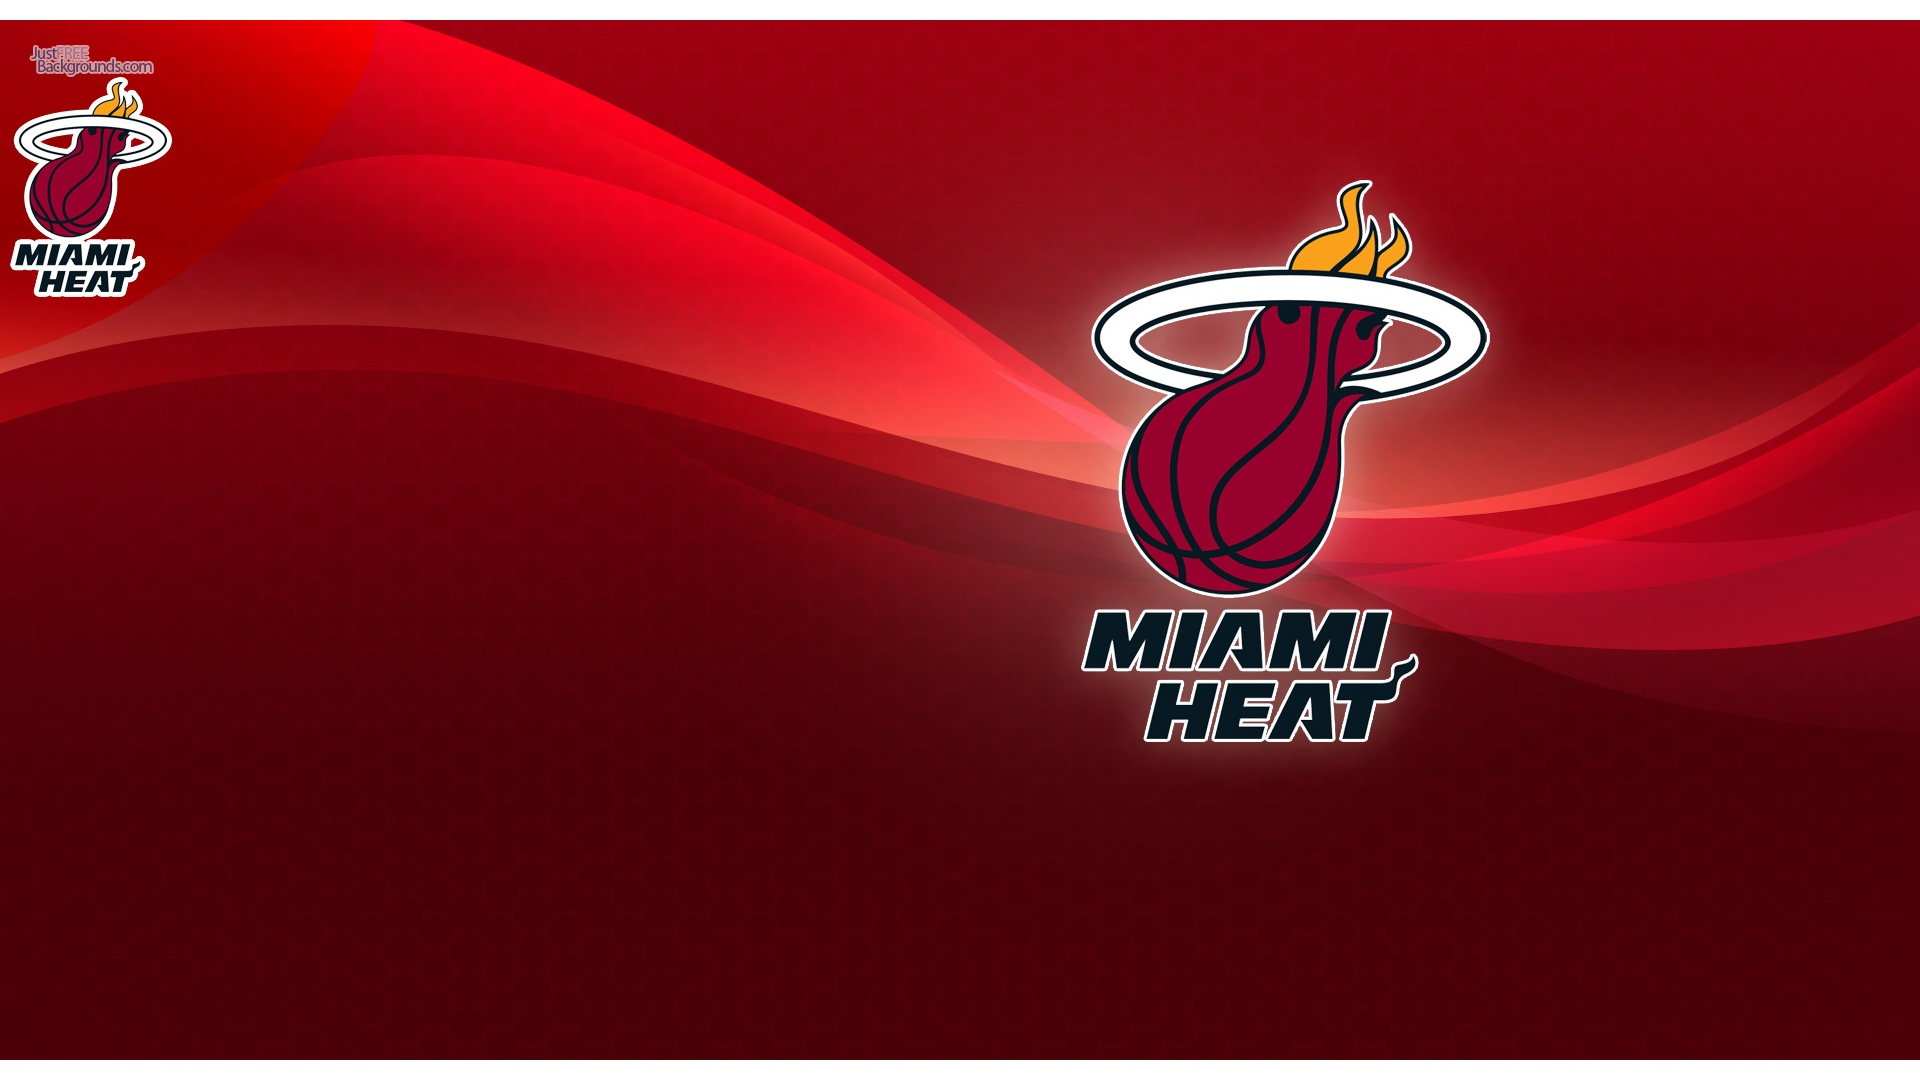 fonds d'écran miami heat : tous les wallpapers miami heat